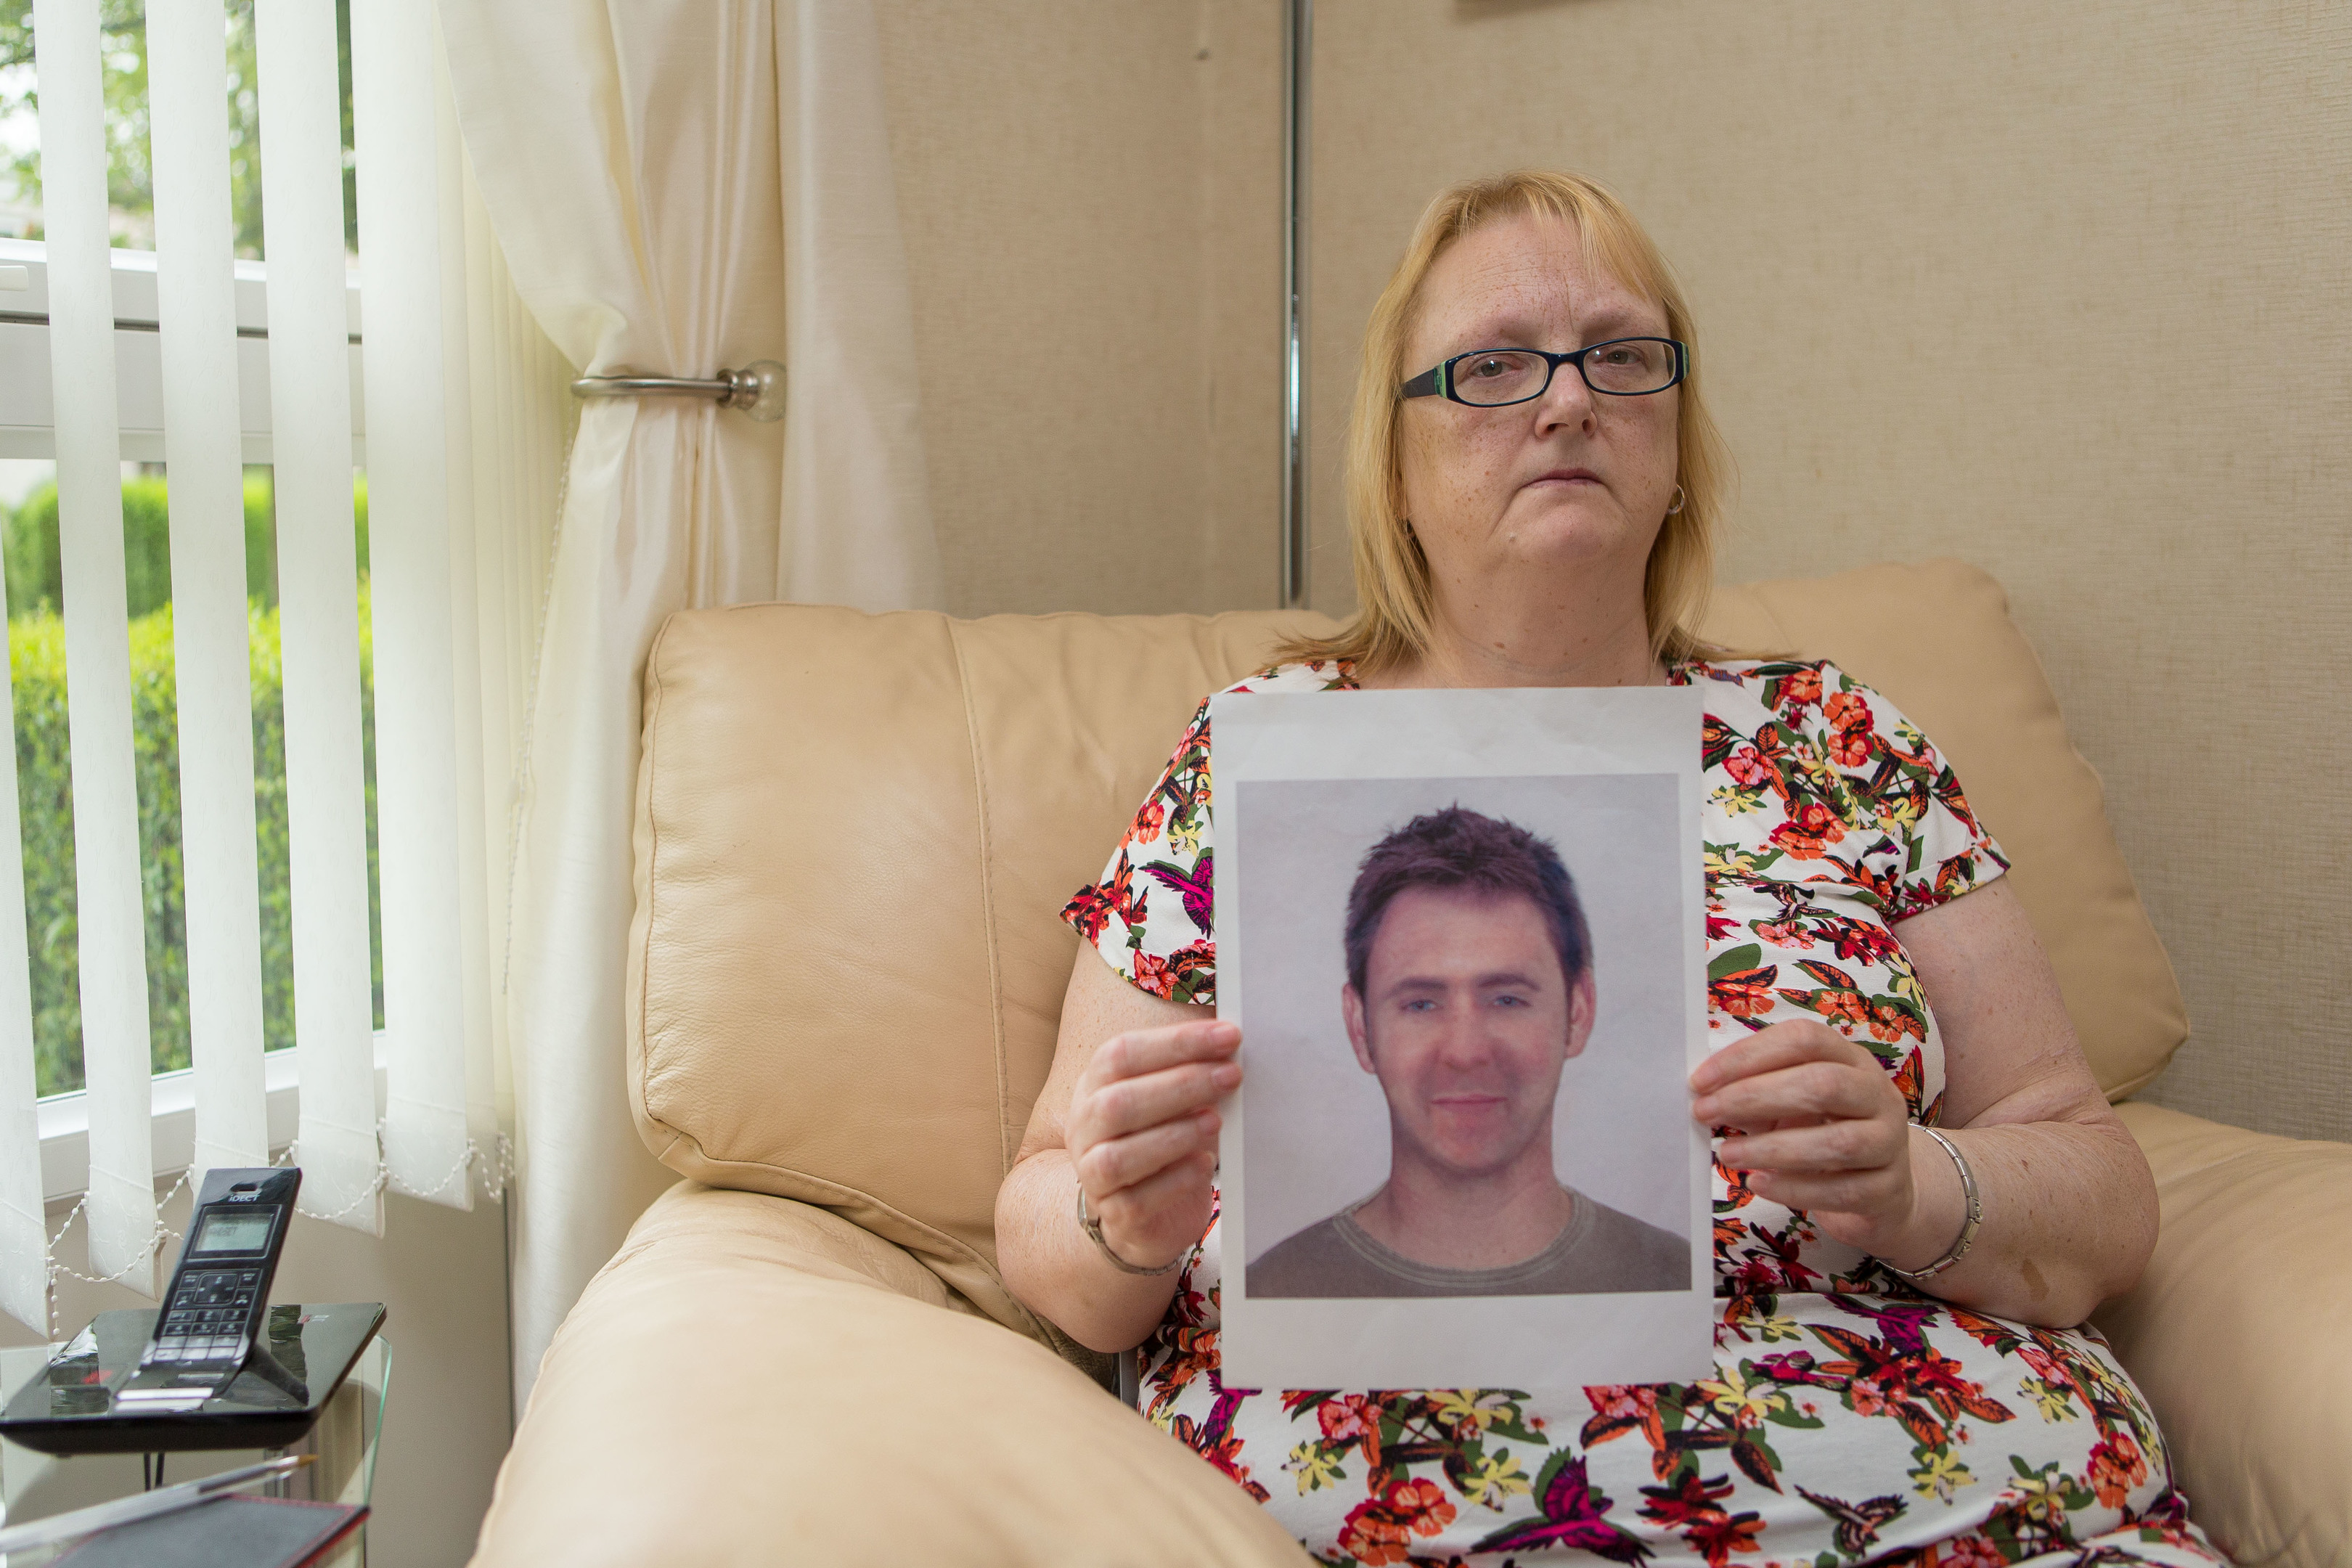 Missing person Kenneth Jones is shown in a Police E-Fit held by his long suffering mother MaryAnne Jones.